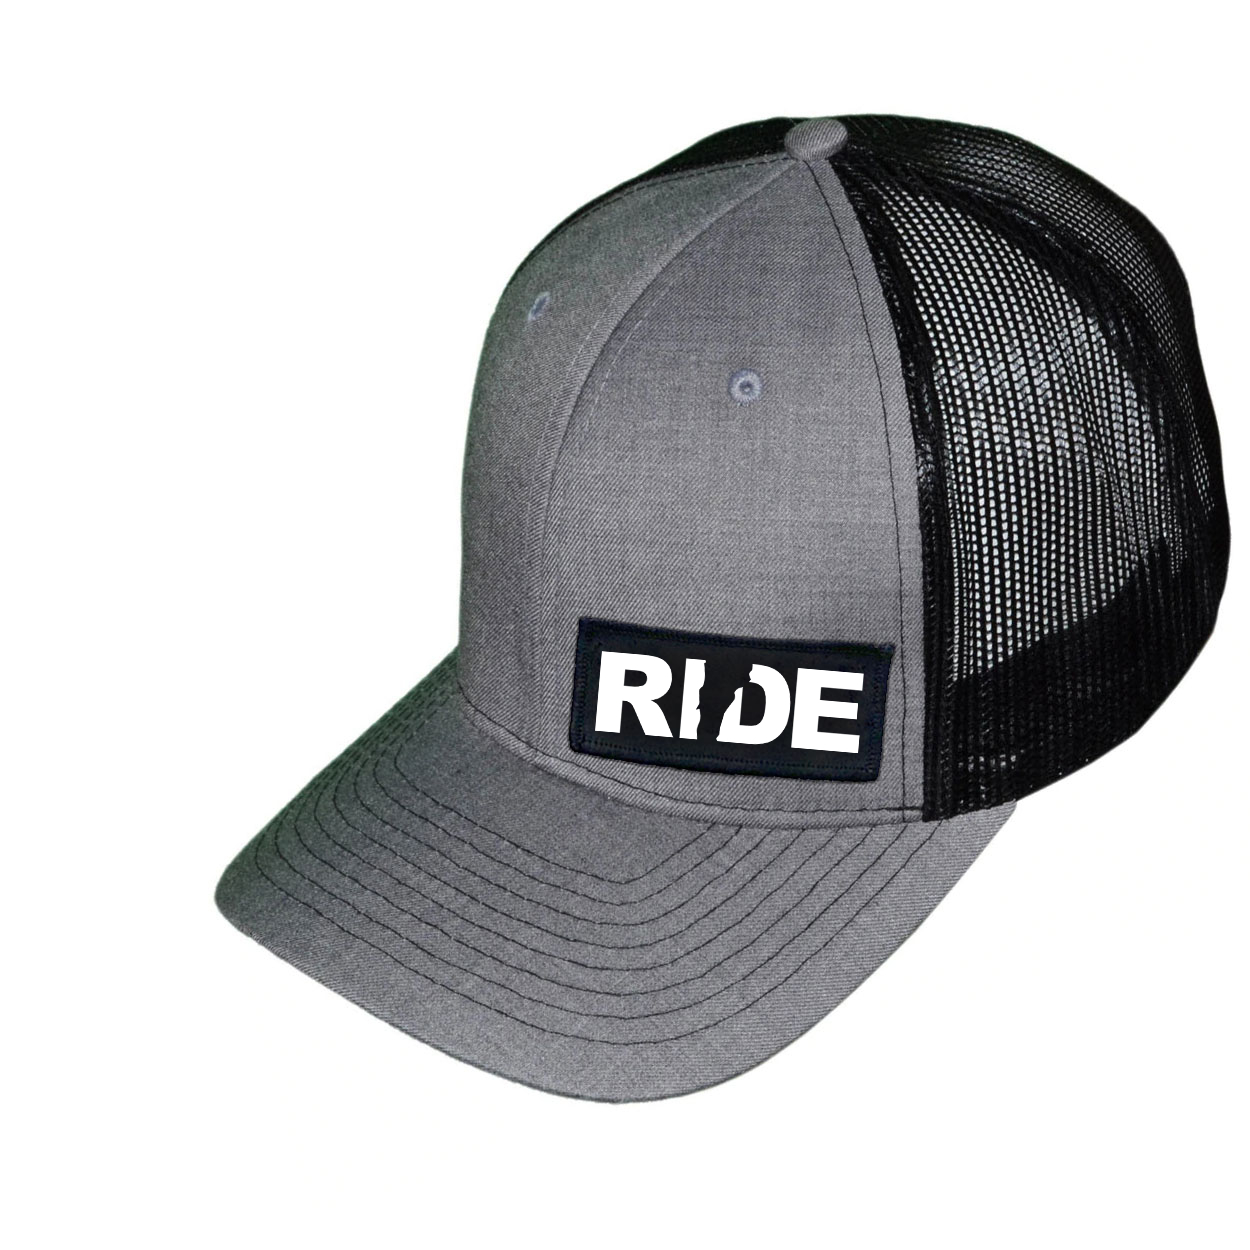 Ride Vermont Night Out Woven Patch Snapback Trucker Hat Heather Gray/Black (White Logo)